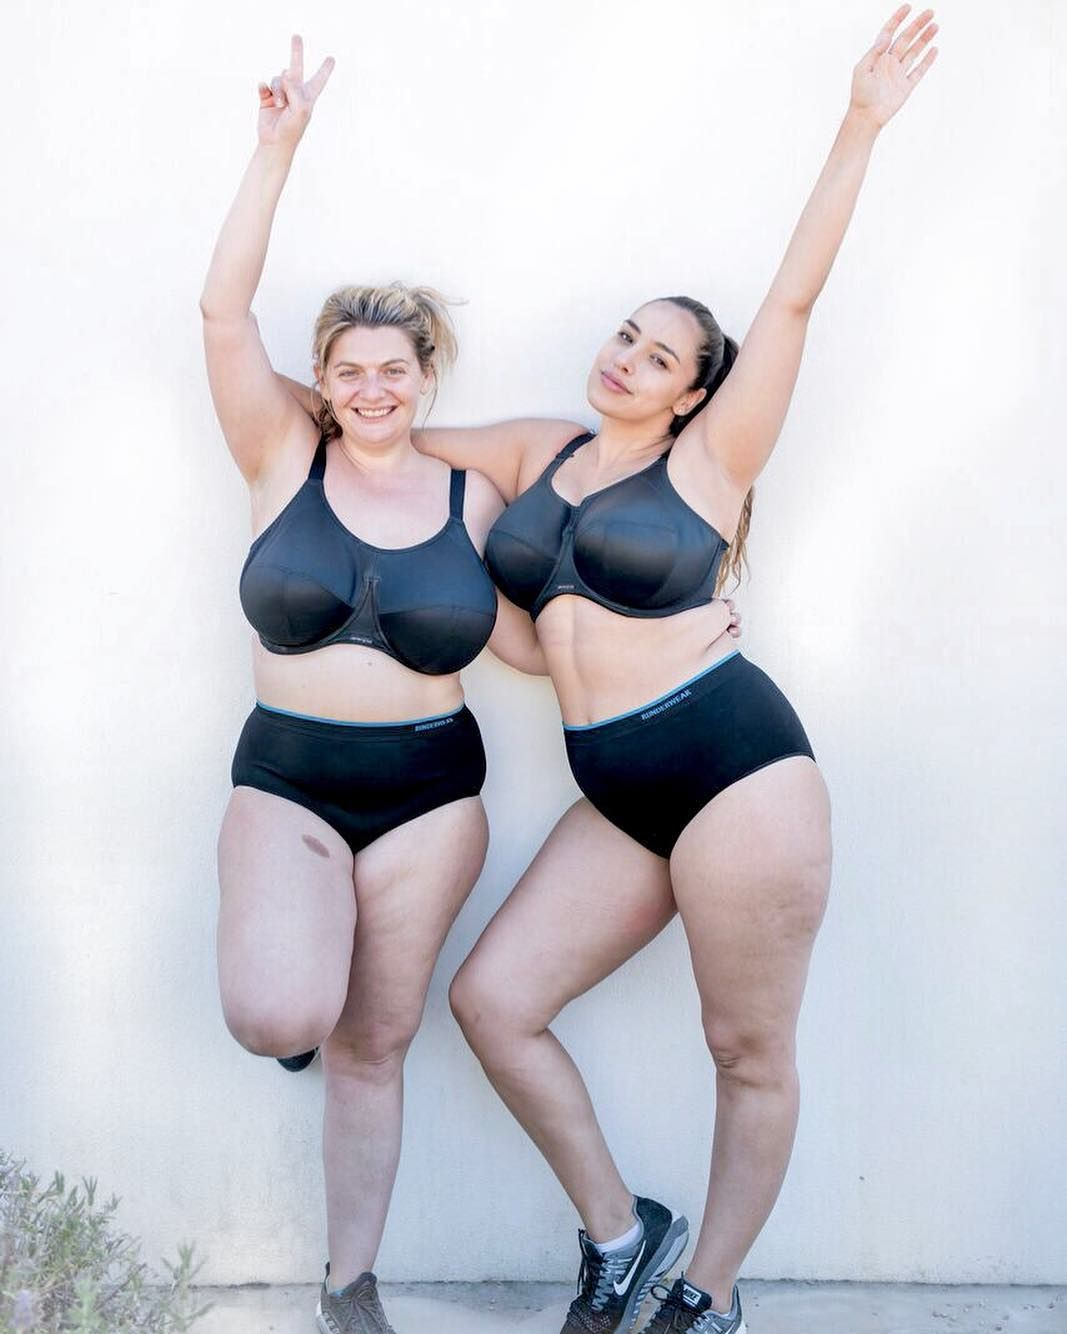 507dddea9aa20 THE BIG REVEAL so  bryonygordon and I are going to run the  londonmarathon  IN OUR UNDERWEAR To prove that you don t have to be an athlete…